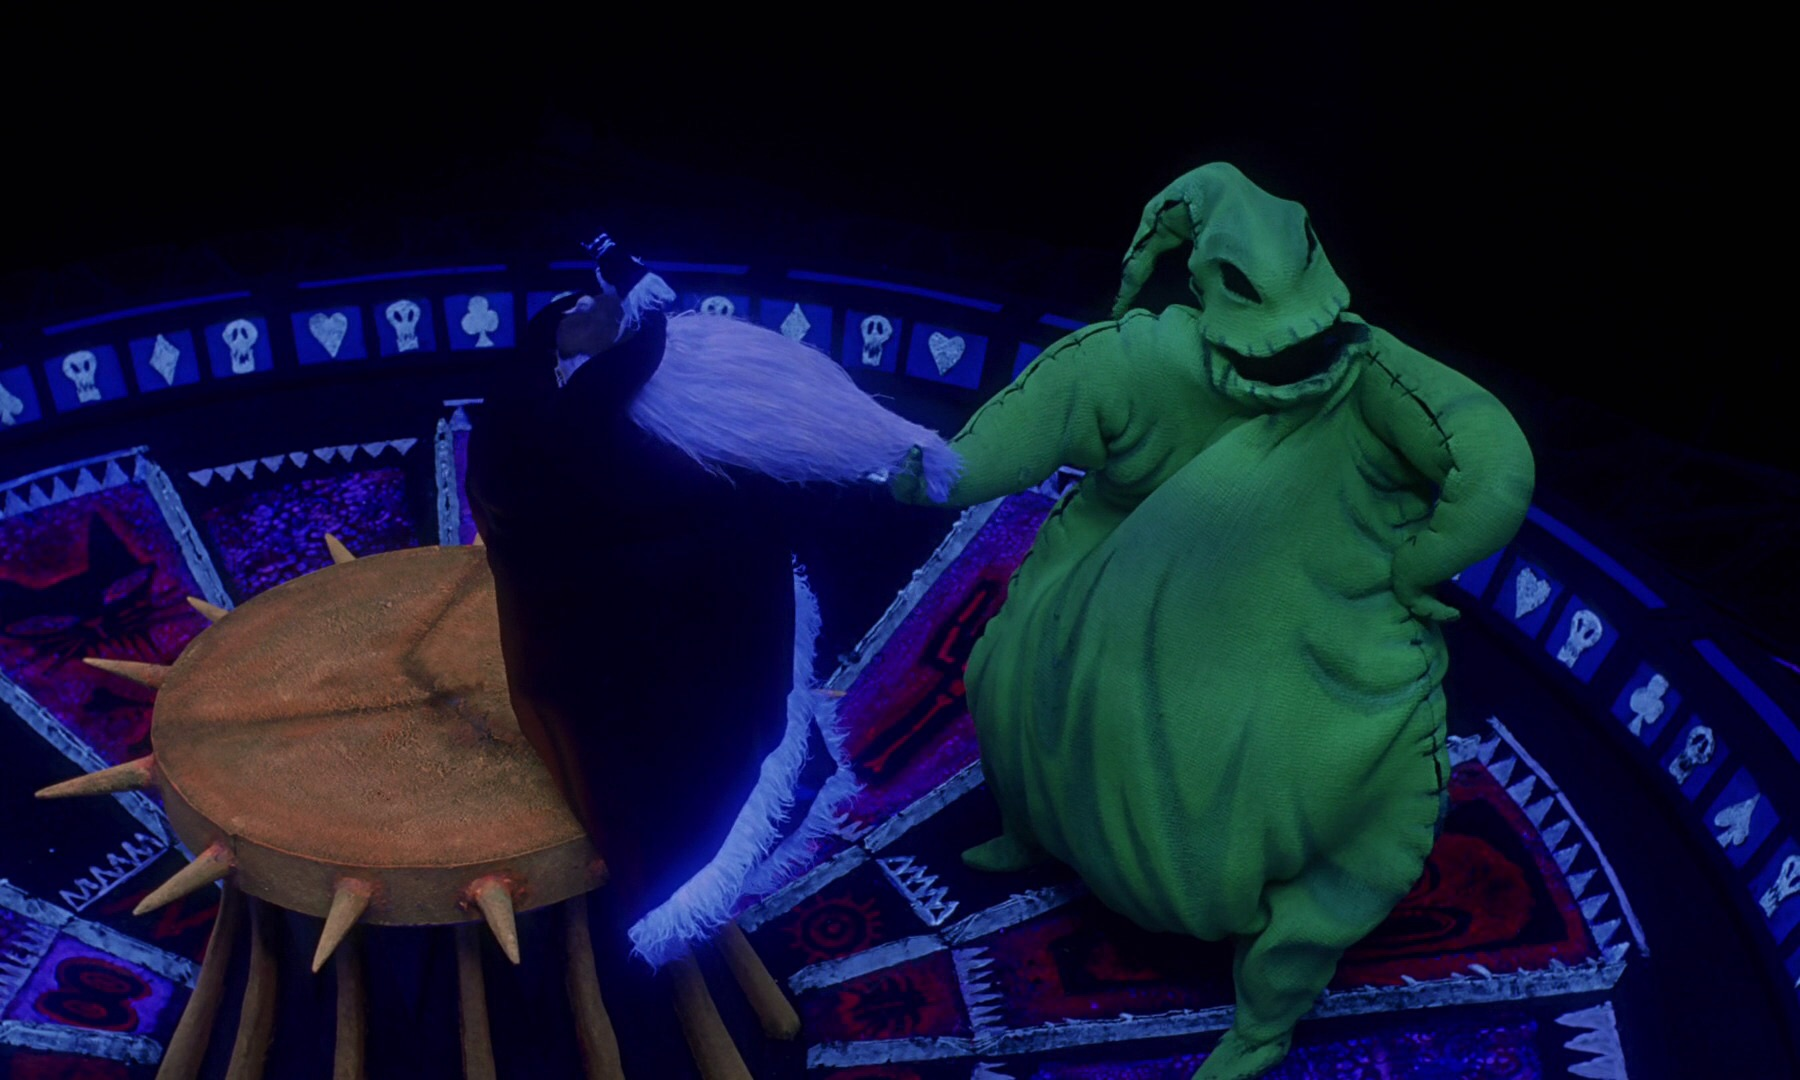 Oogie Boogie S Song Disney Wiki Fandom Powered By Wikia